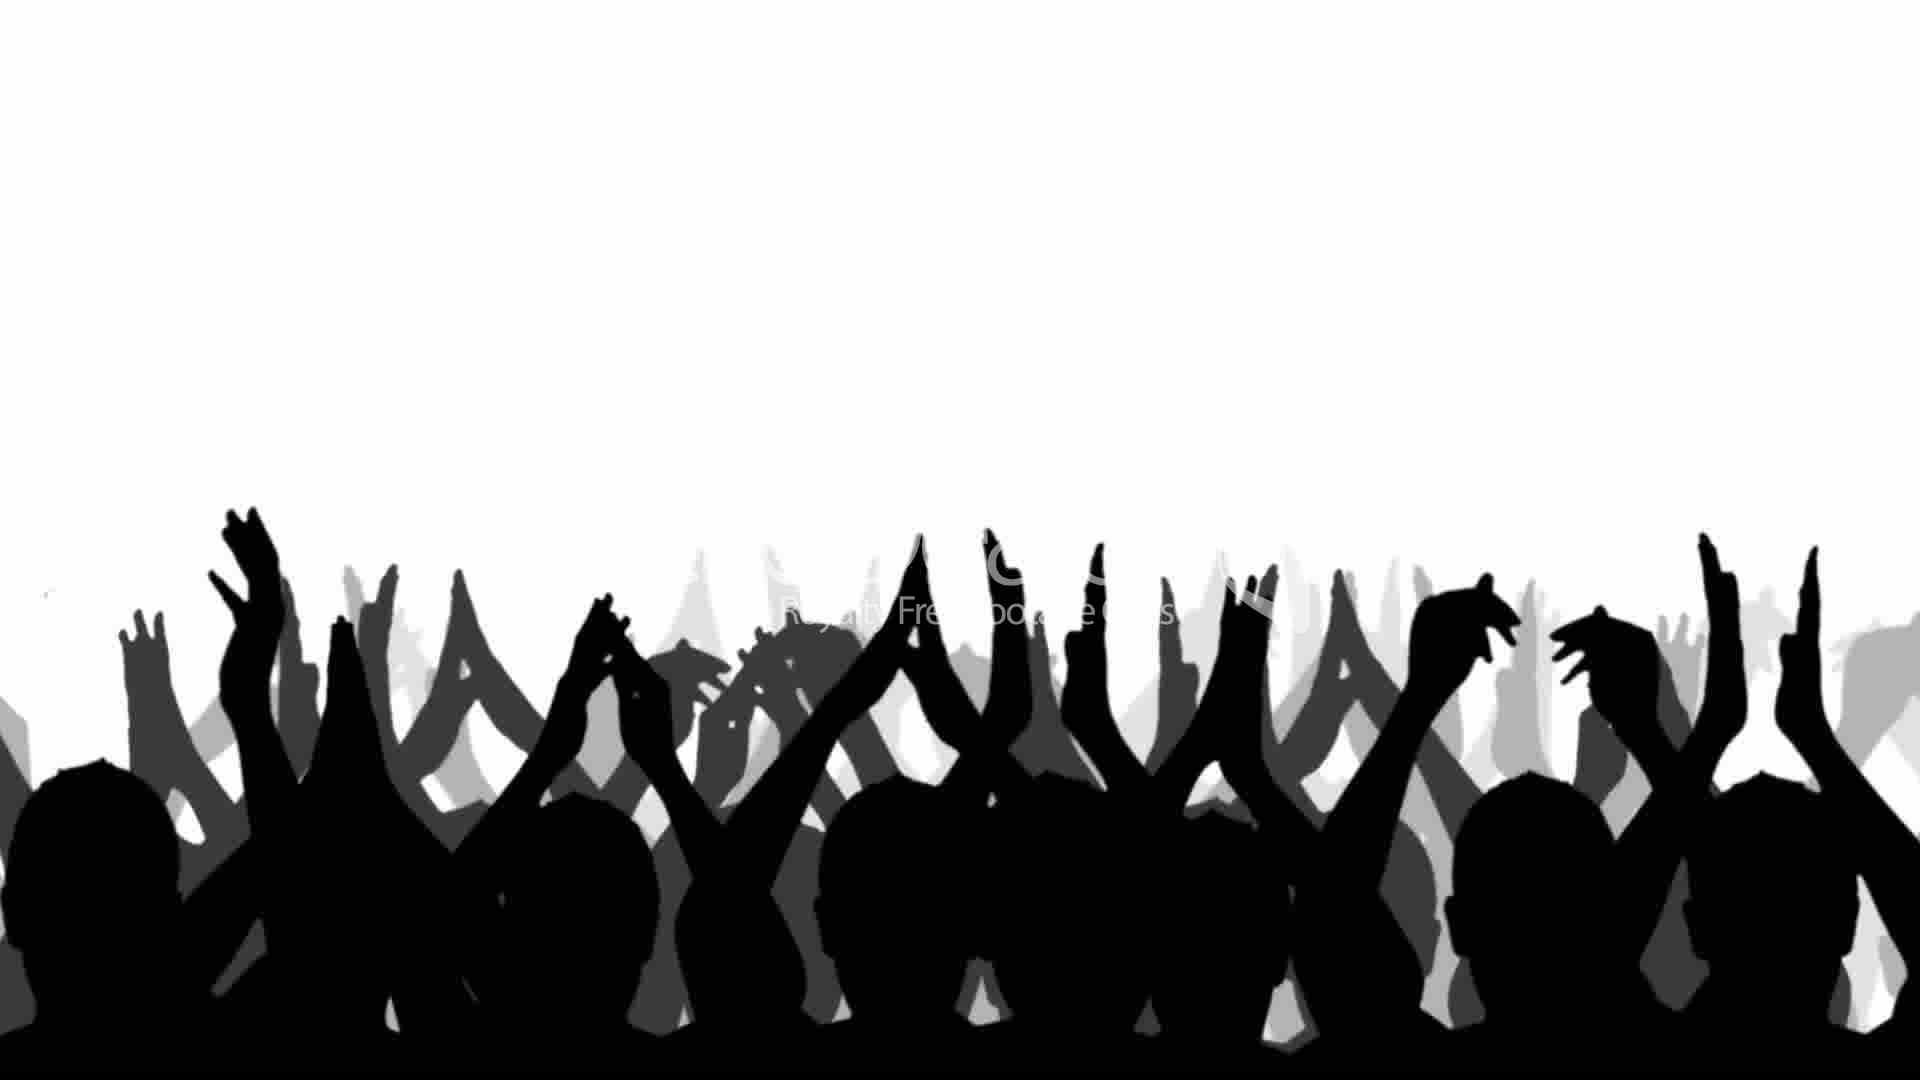 Crowd outline pencil and. Applause clipart concert